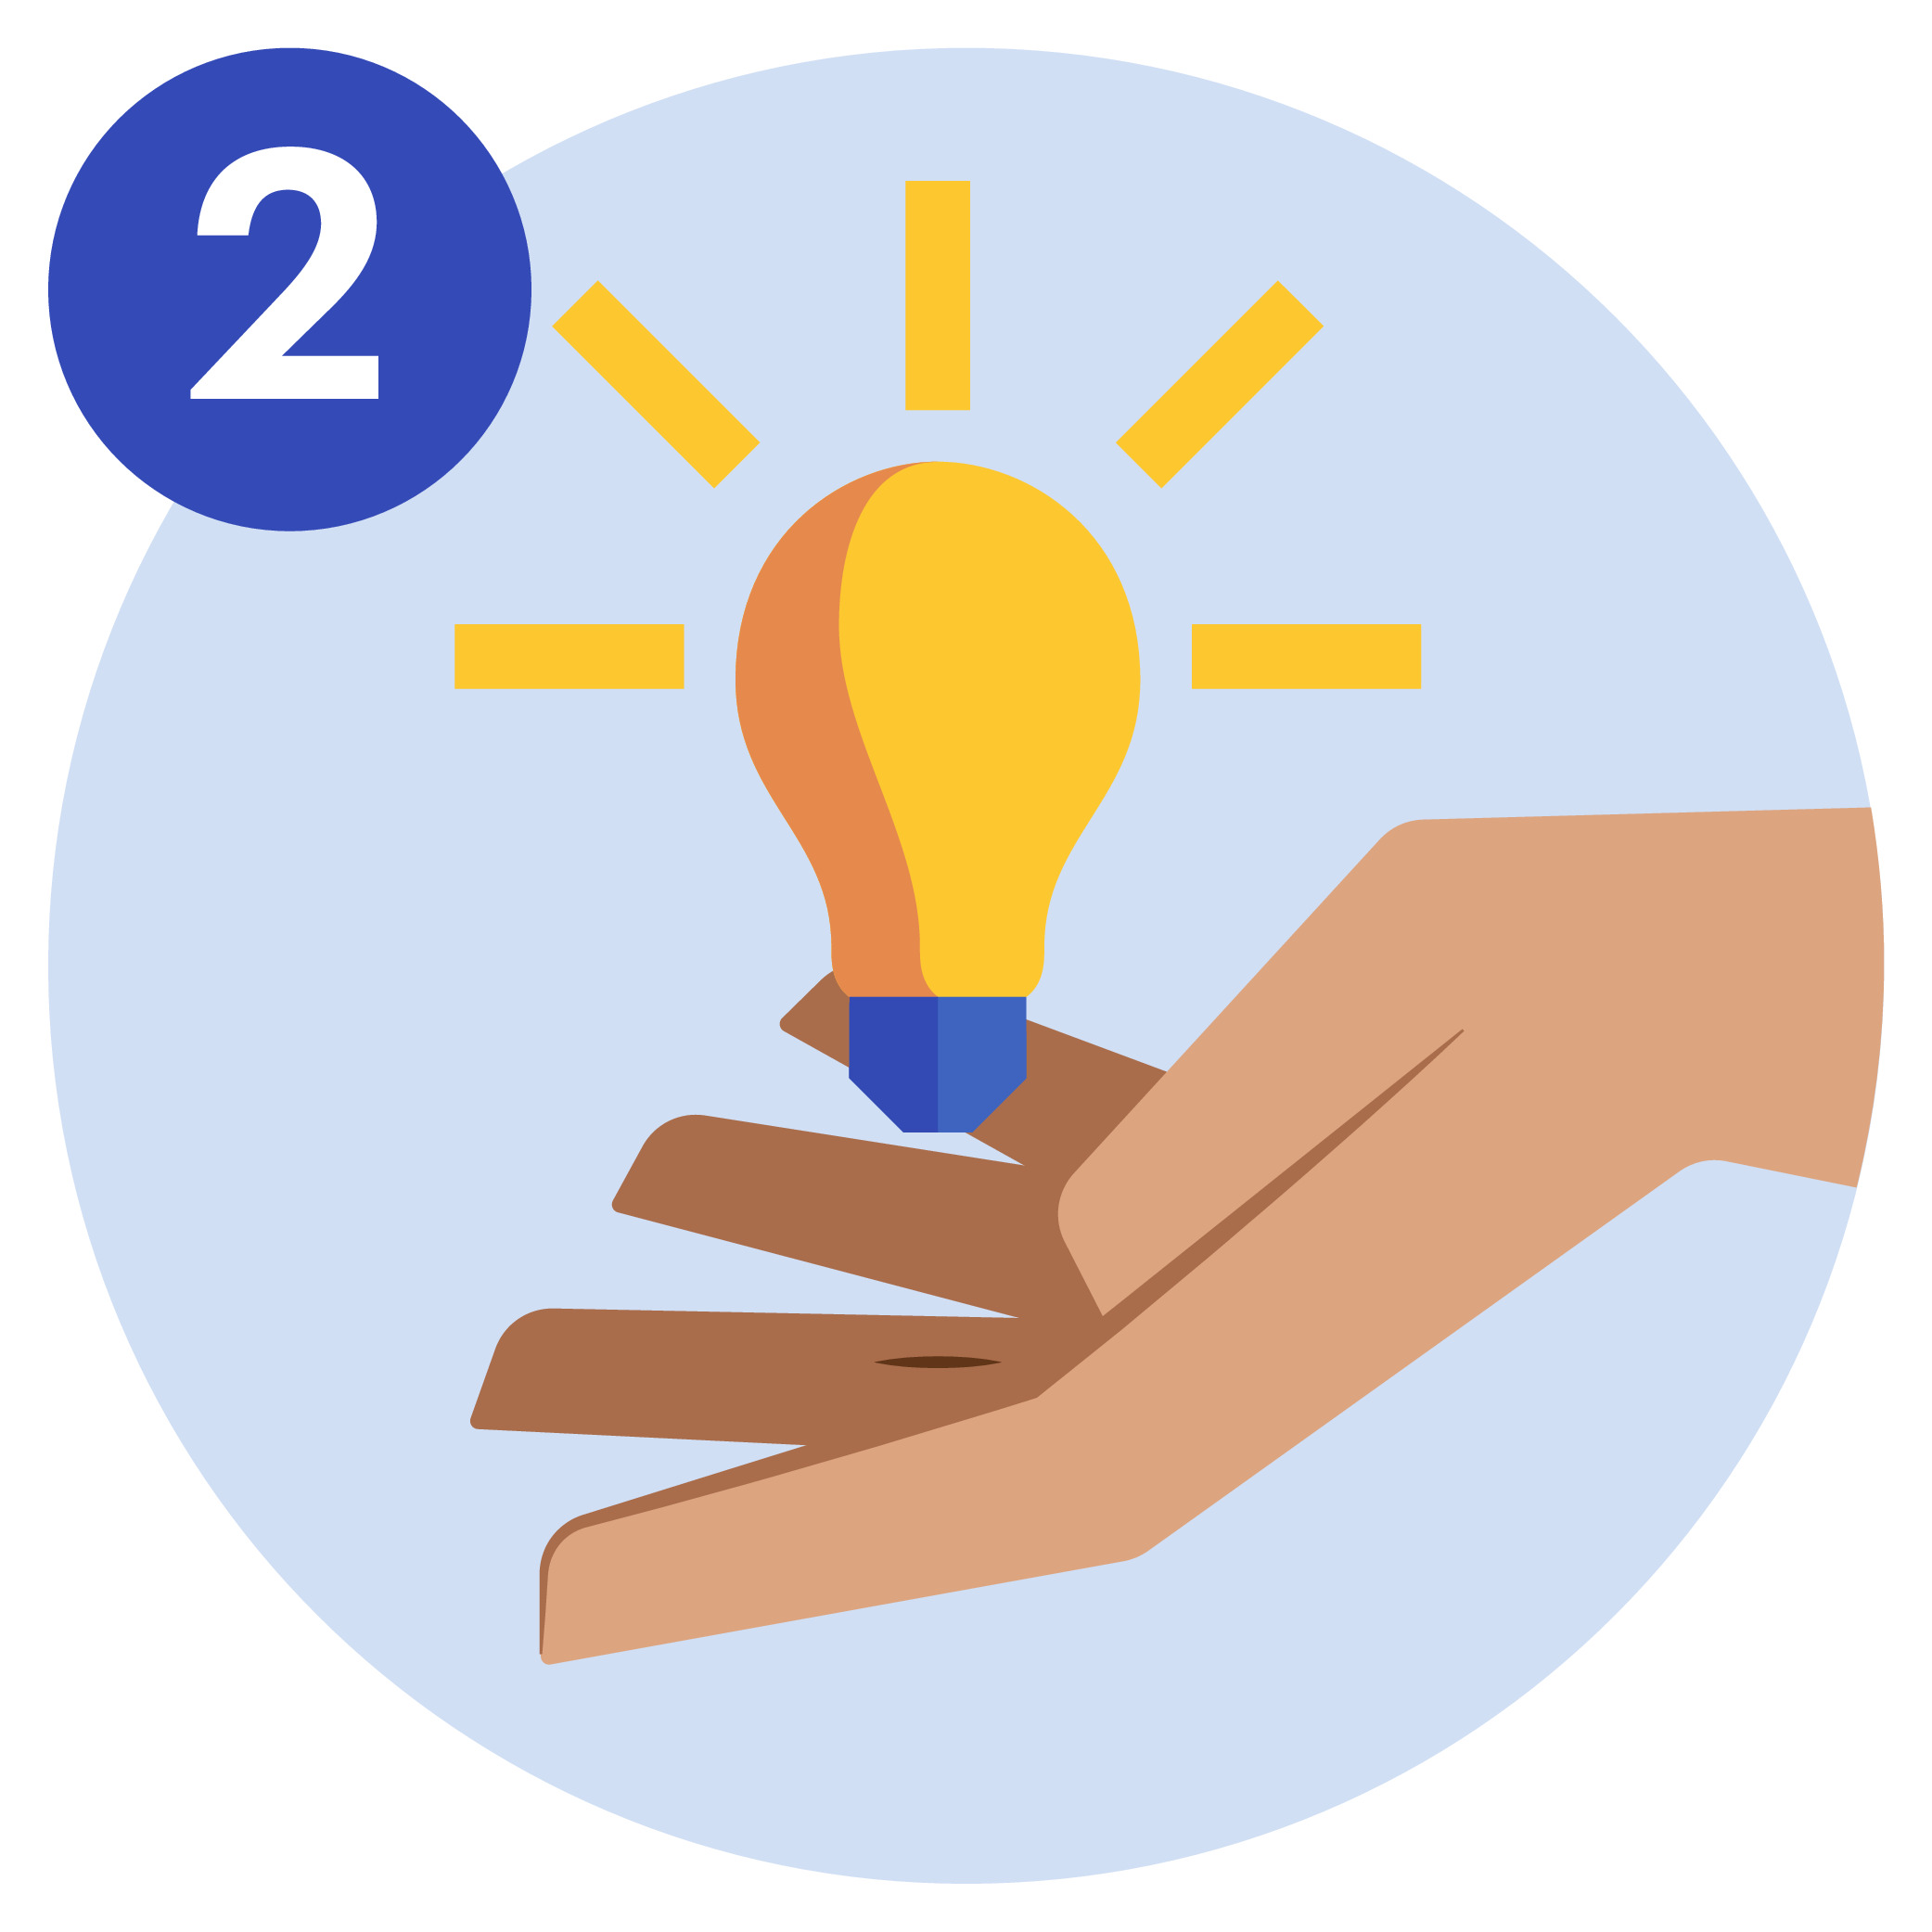 #2 A lightbulb floating on top of a hand.